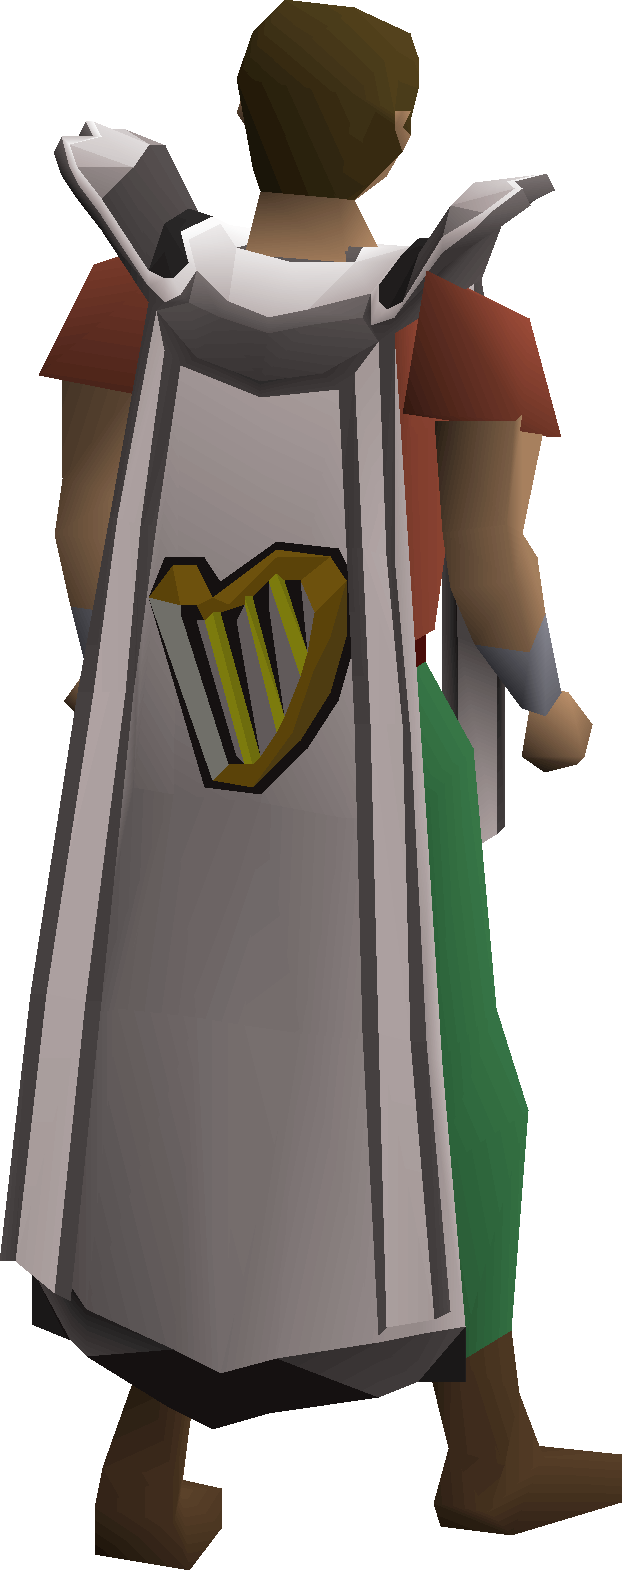 Music Cape Osrs Wiki The quest point cape can be obtained by players who have completed all quests (excluding miniquests). music cape osrs wiki